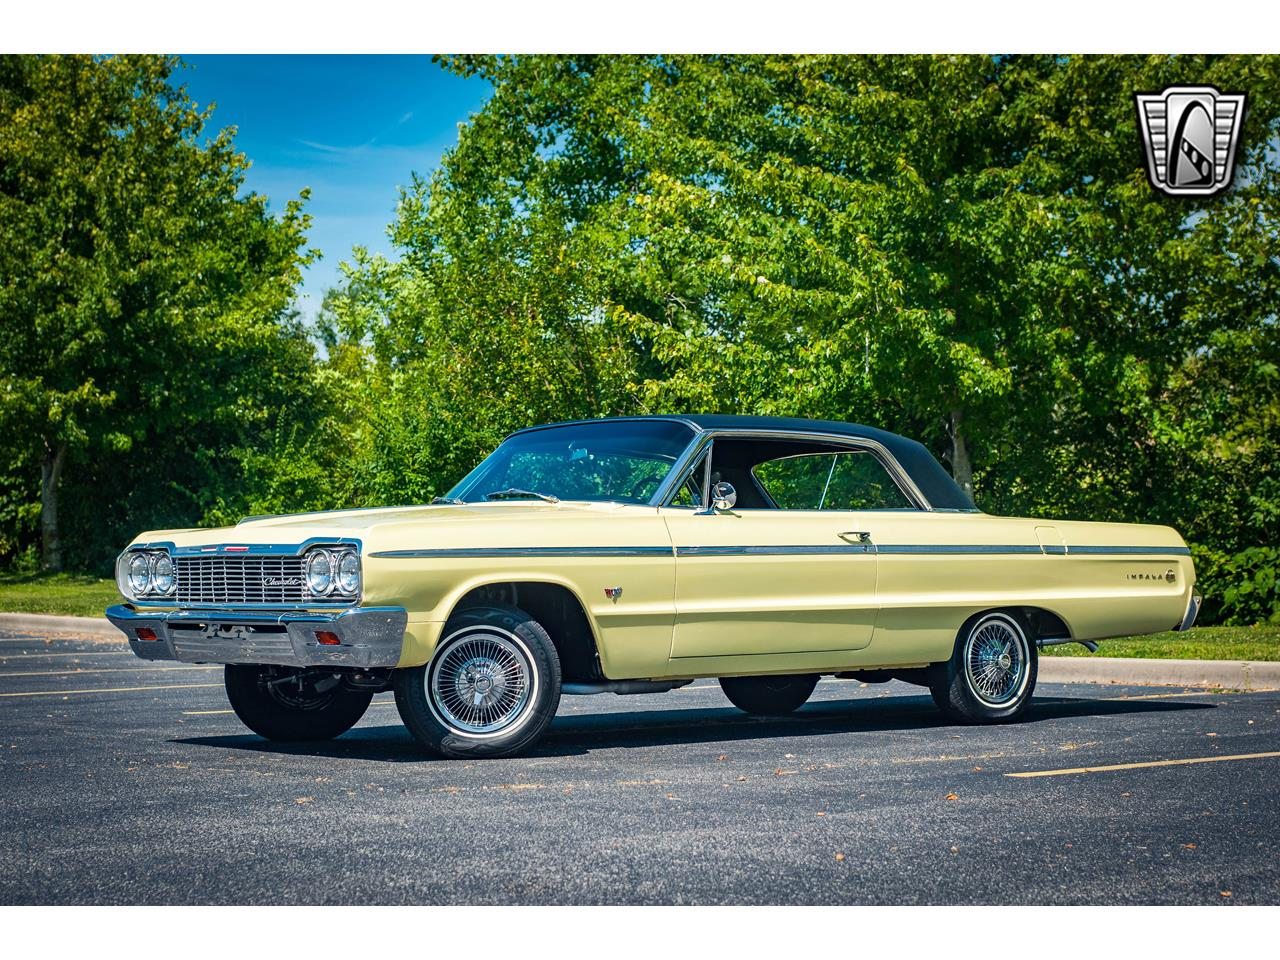 Large Picture of Classic 1964 Impala located in O'Fallon Illinois - $45,000.00 - QRDR